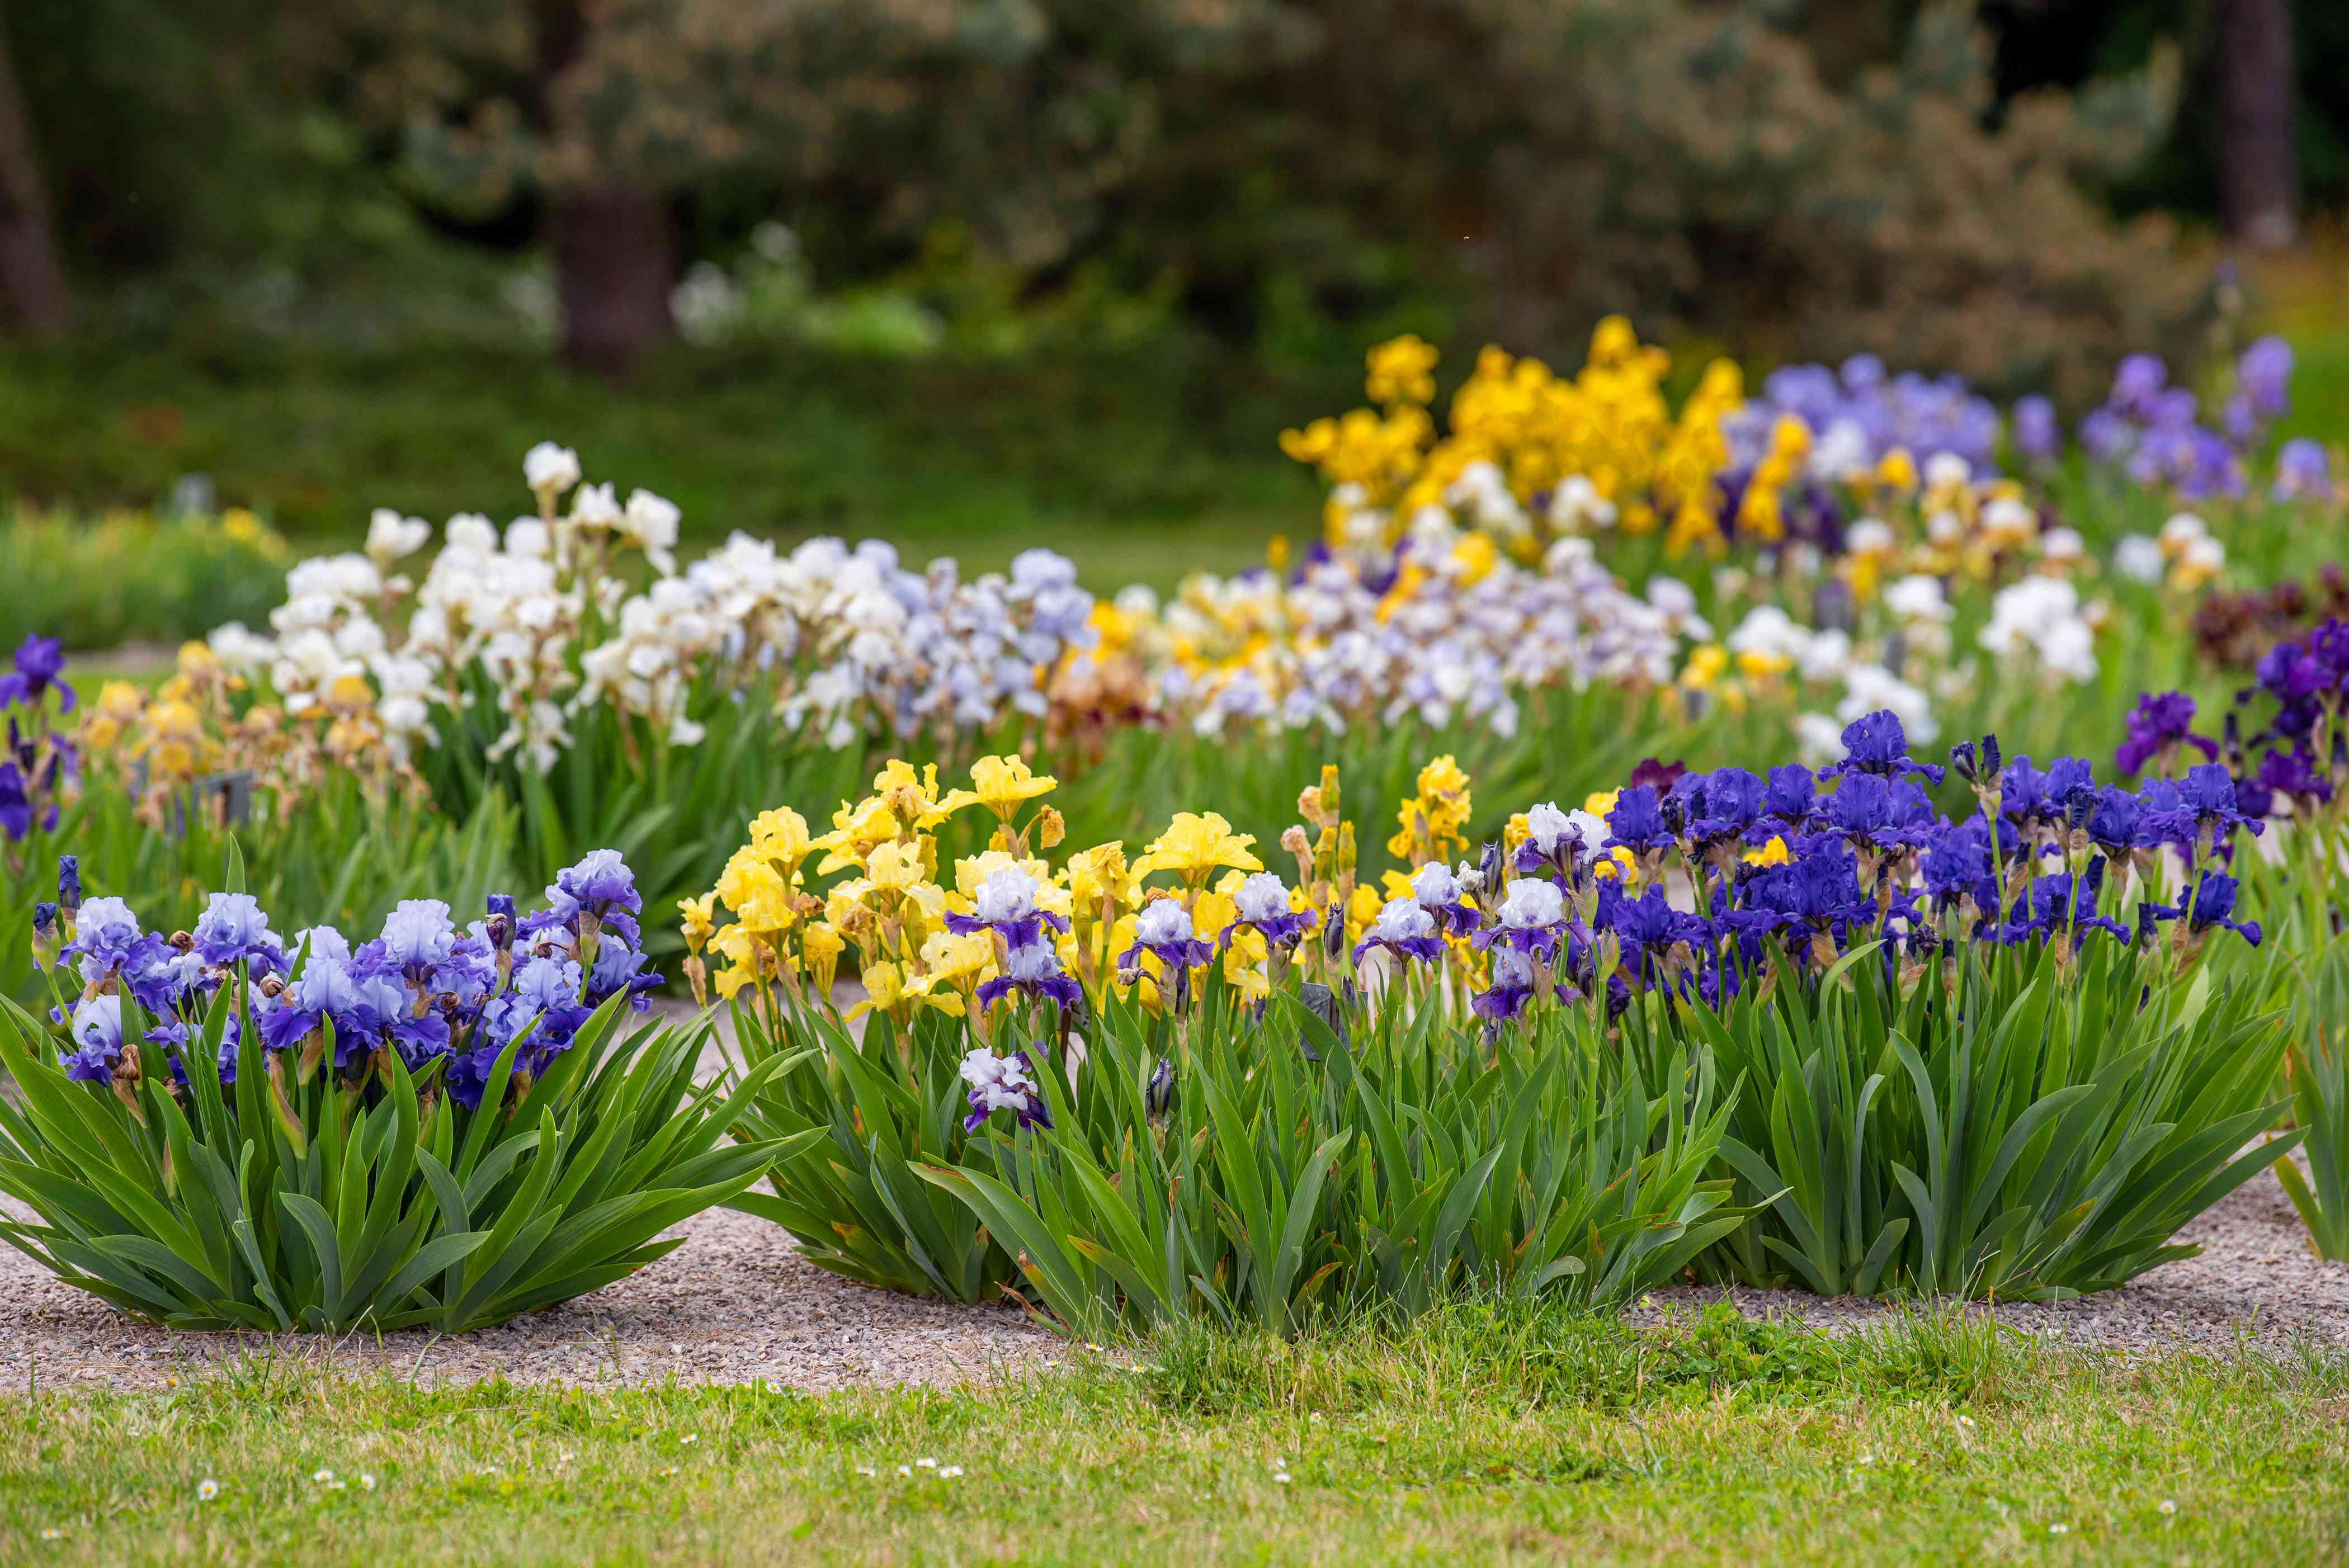 Iris flowers with purple, yellow and white petals on clustered stalks in garden